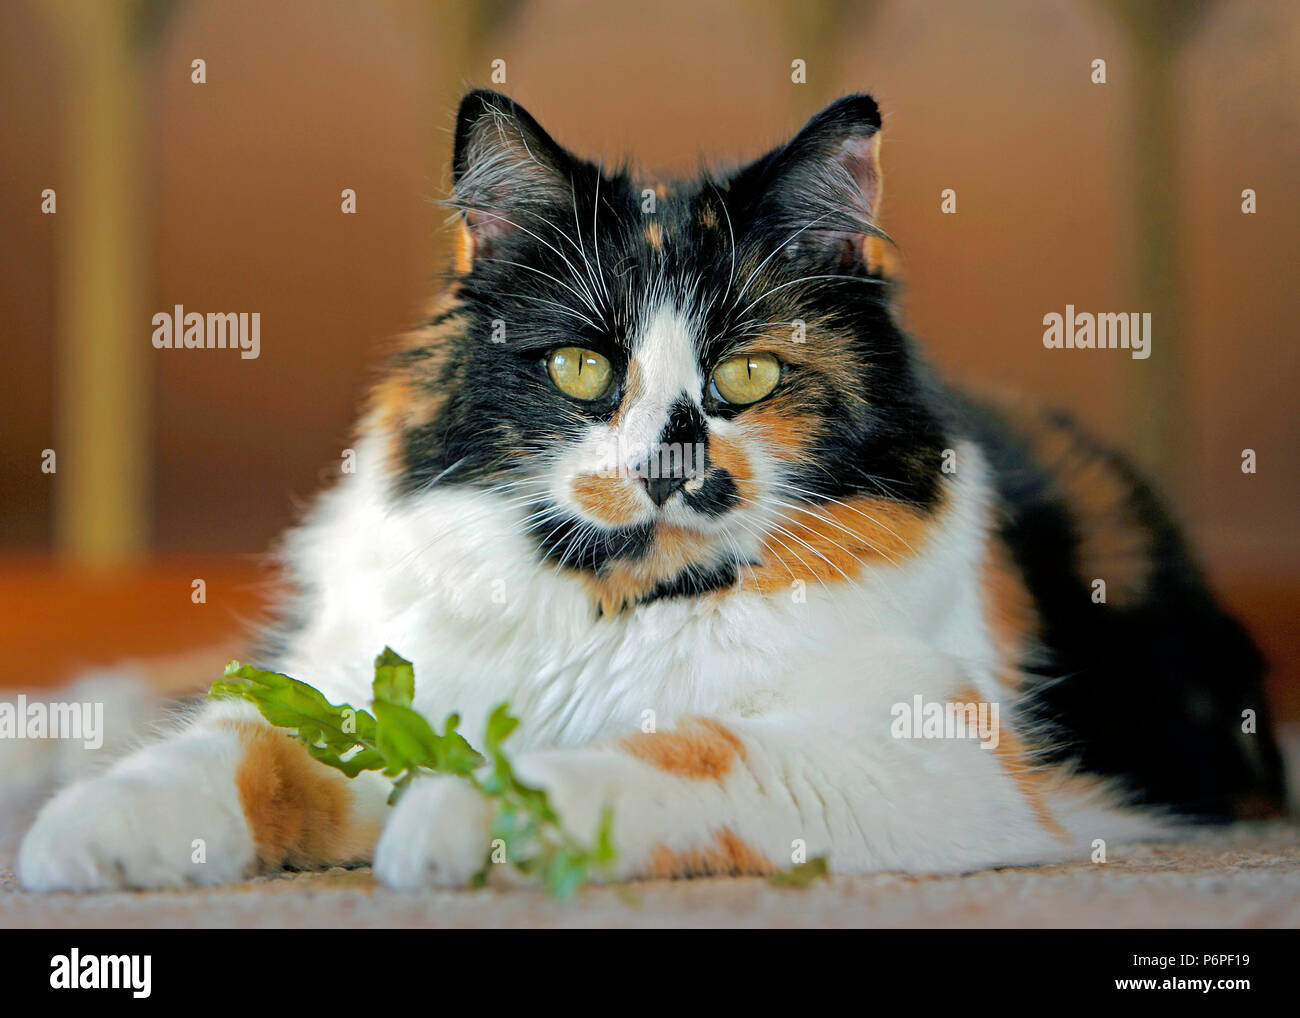 Calico female Cat in house playing with leaf from Houseplant - Stock Image